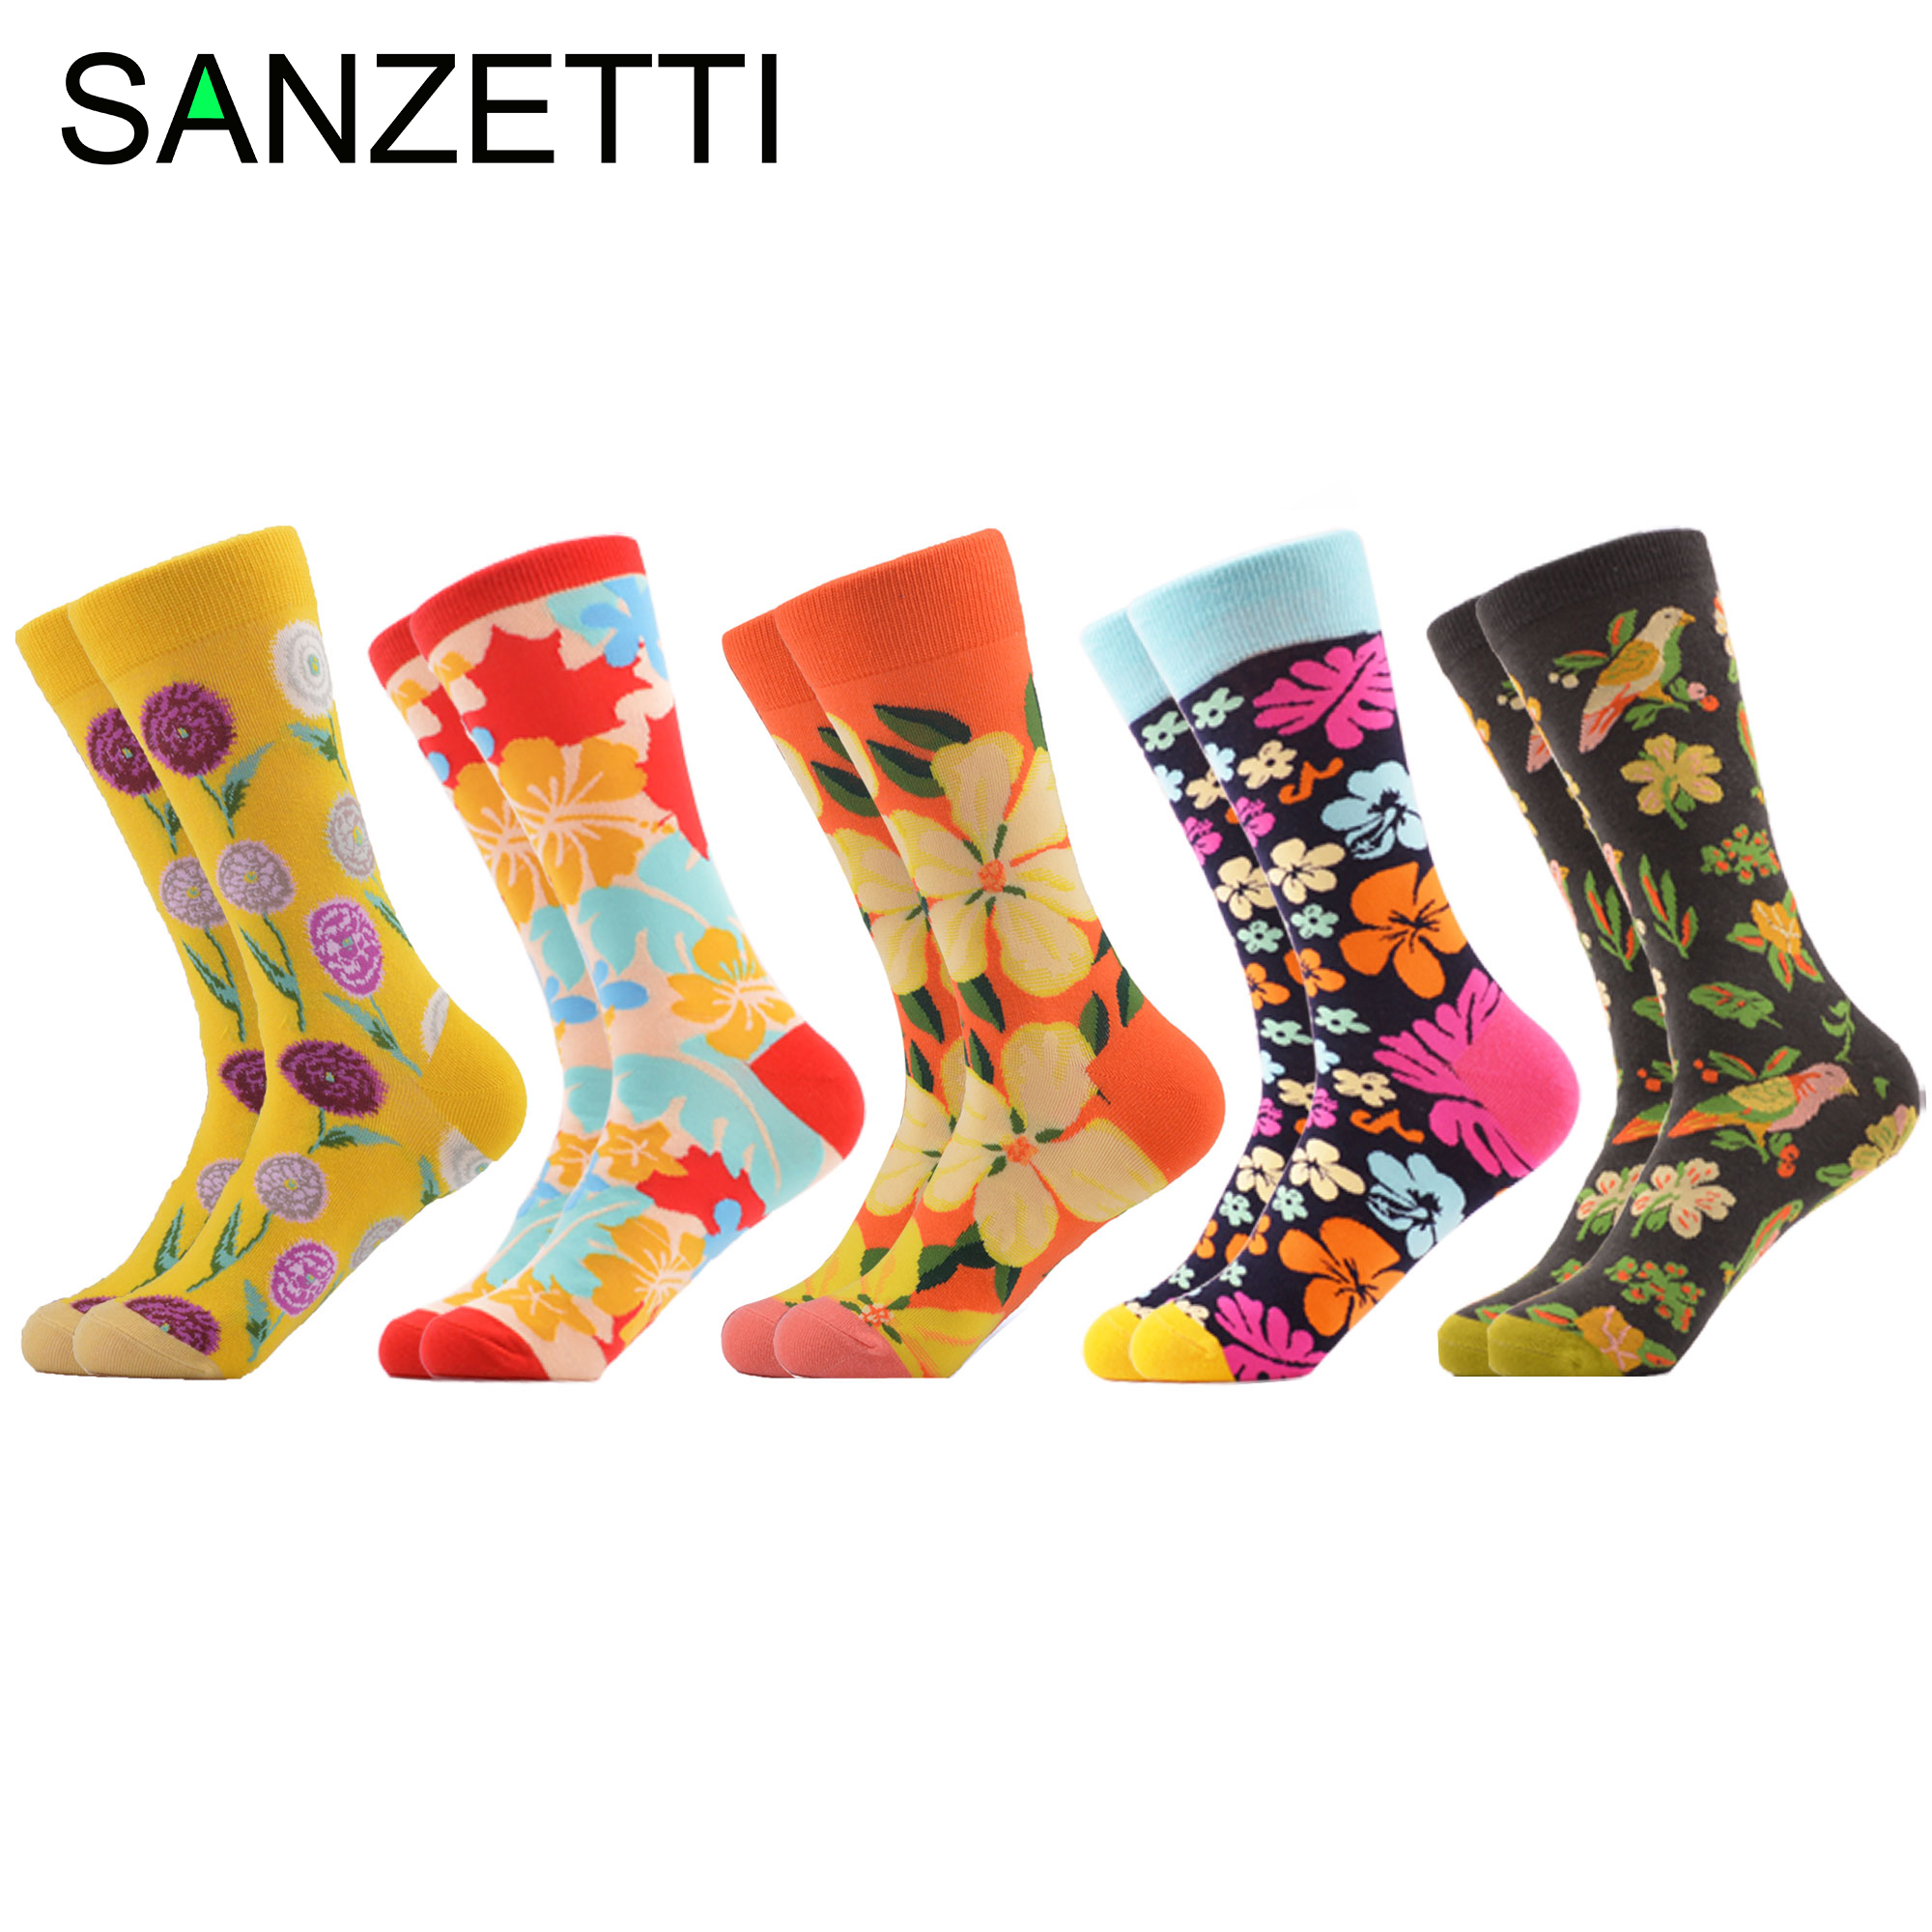 SANZETTI 5 Pairs Mens Casual Combed Cotton Happy Crew Socks Personality Maple Leaf Pattern Party Gifts Creative Dress Gym Socks